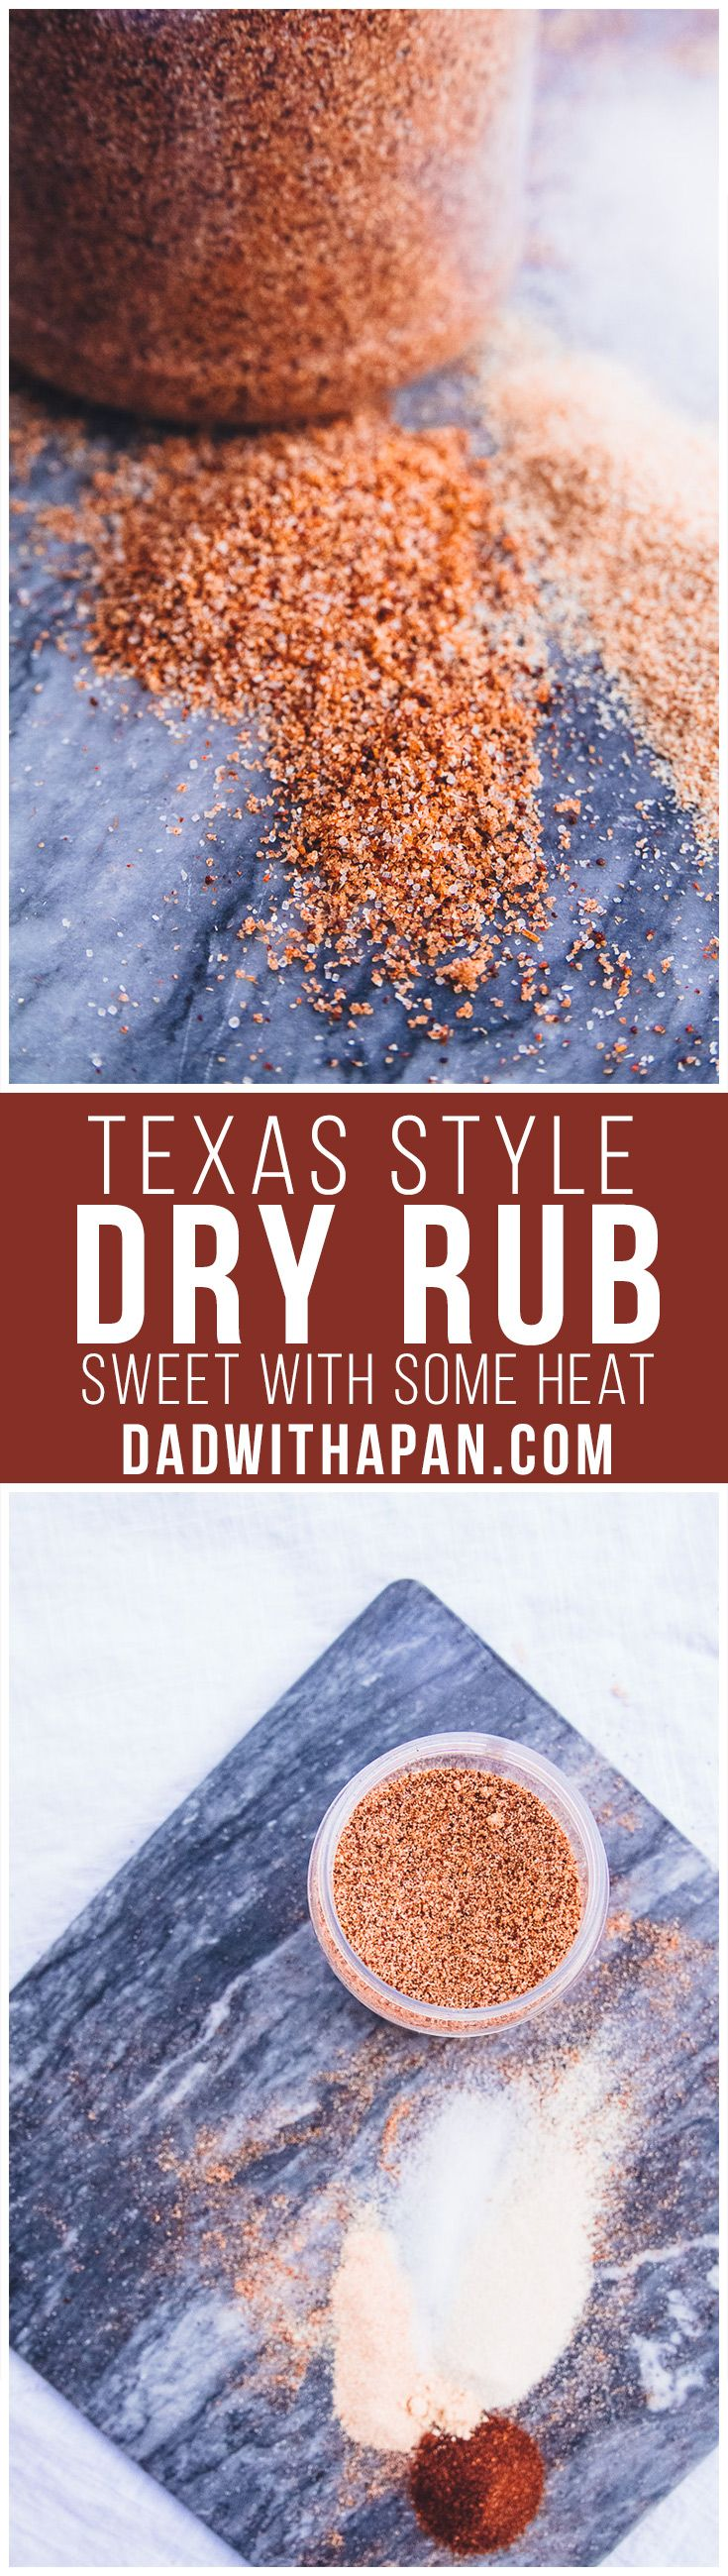 Texas Style Dry Rub For BBQs. Perfect for Chicken, Pork or Beef! #BBQ #Rub #Spice